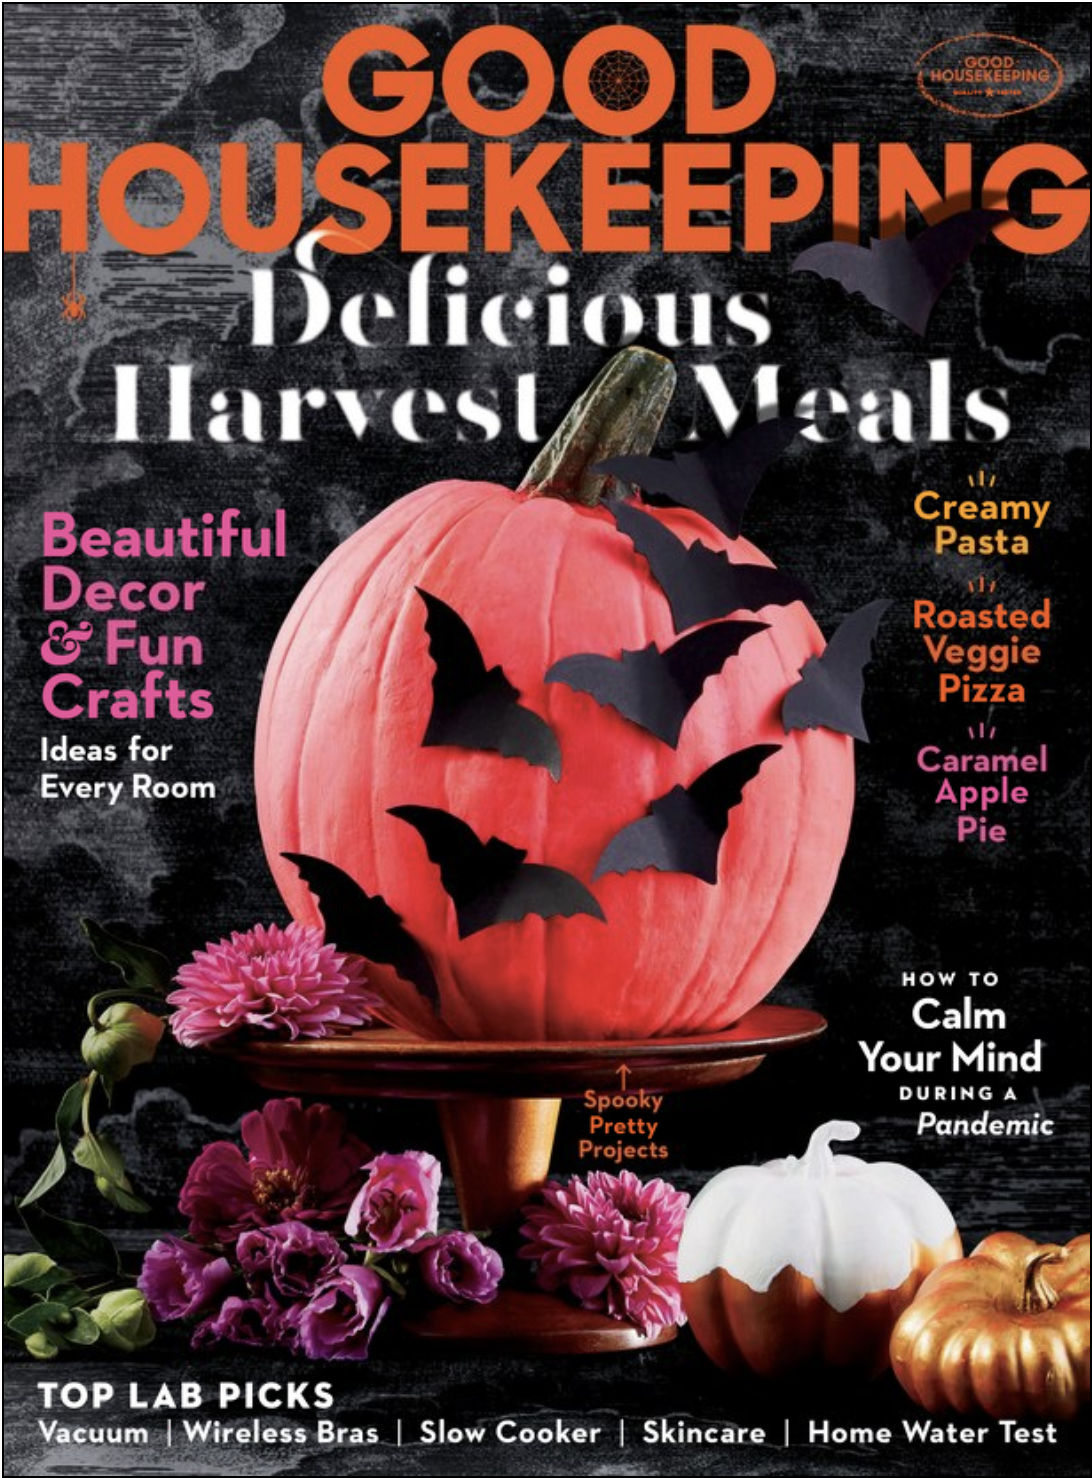 Cover of Good Housekeeping October 2020 with a Jack-o-Lantern